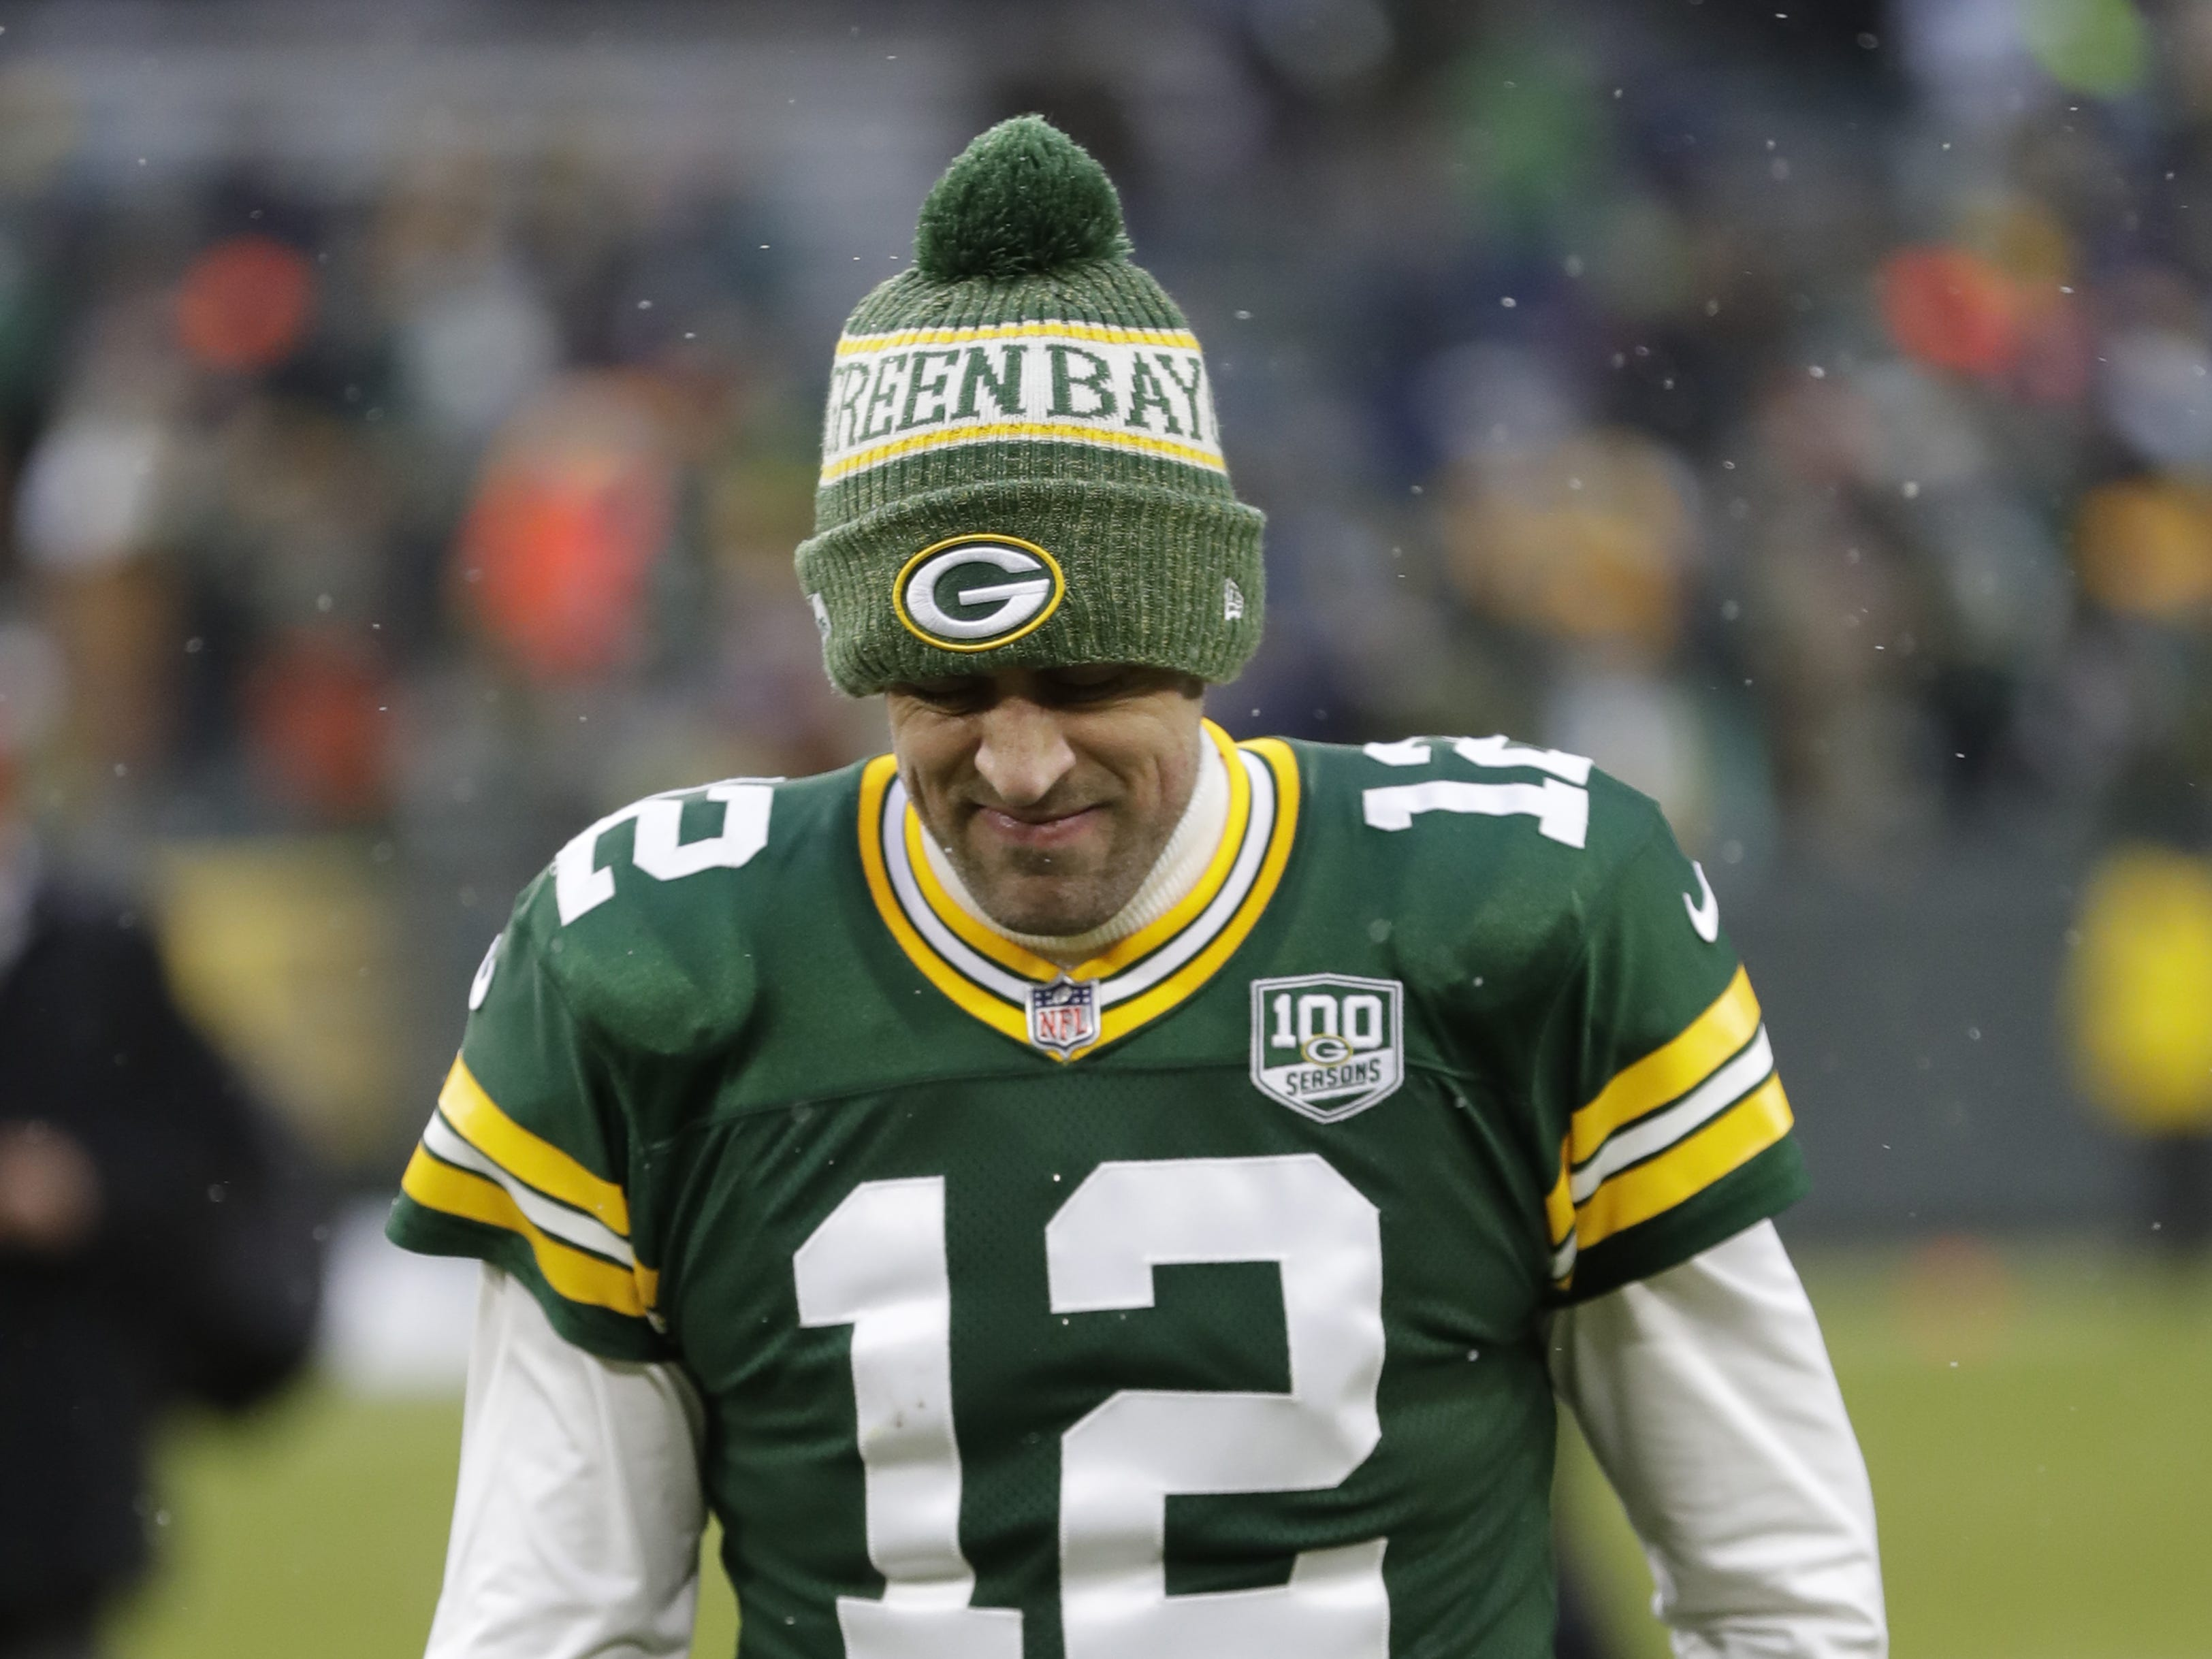 Green Bay Packers quarterback Aaron Rodgers (12) leaves the field following a 20-17 loss against the Arizona Cardinals Sunday, December 2, 2018, at Lambeau Field in Green Bay, Wis.  Dan Powers/USA TODAY NETWORK-Wisconsin